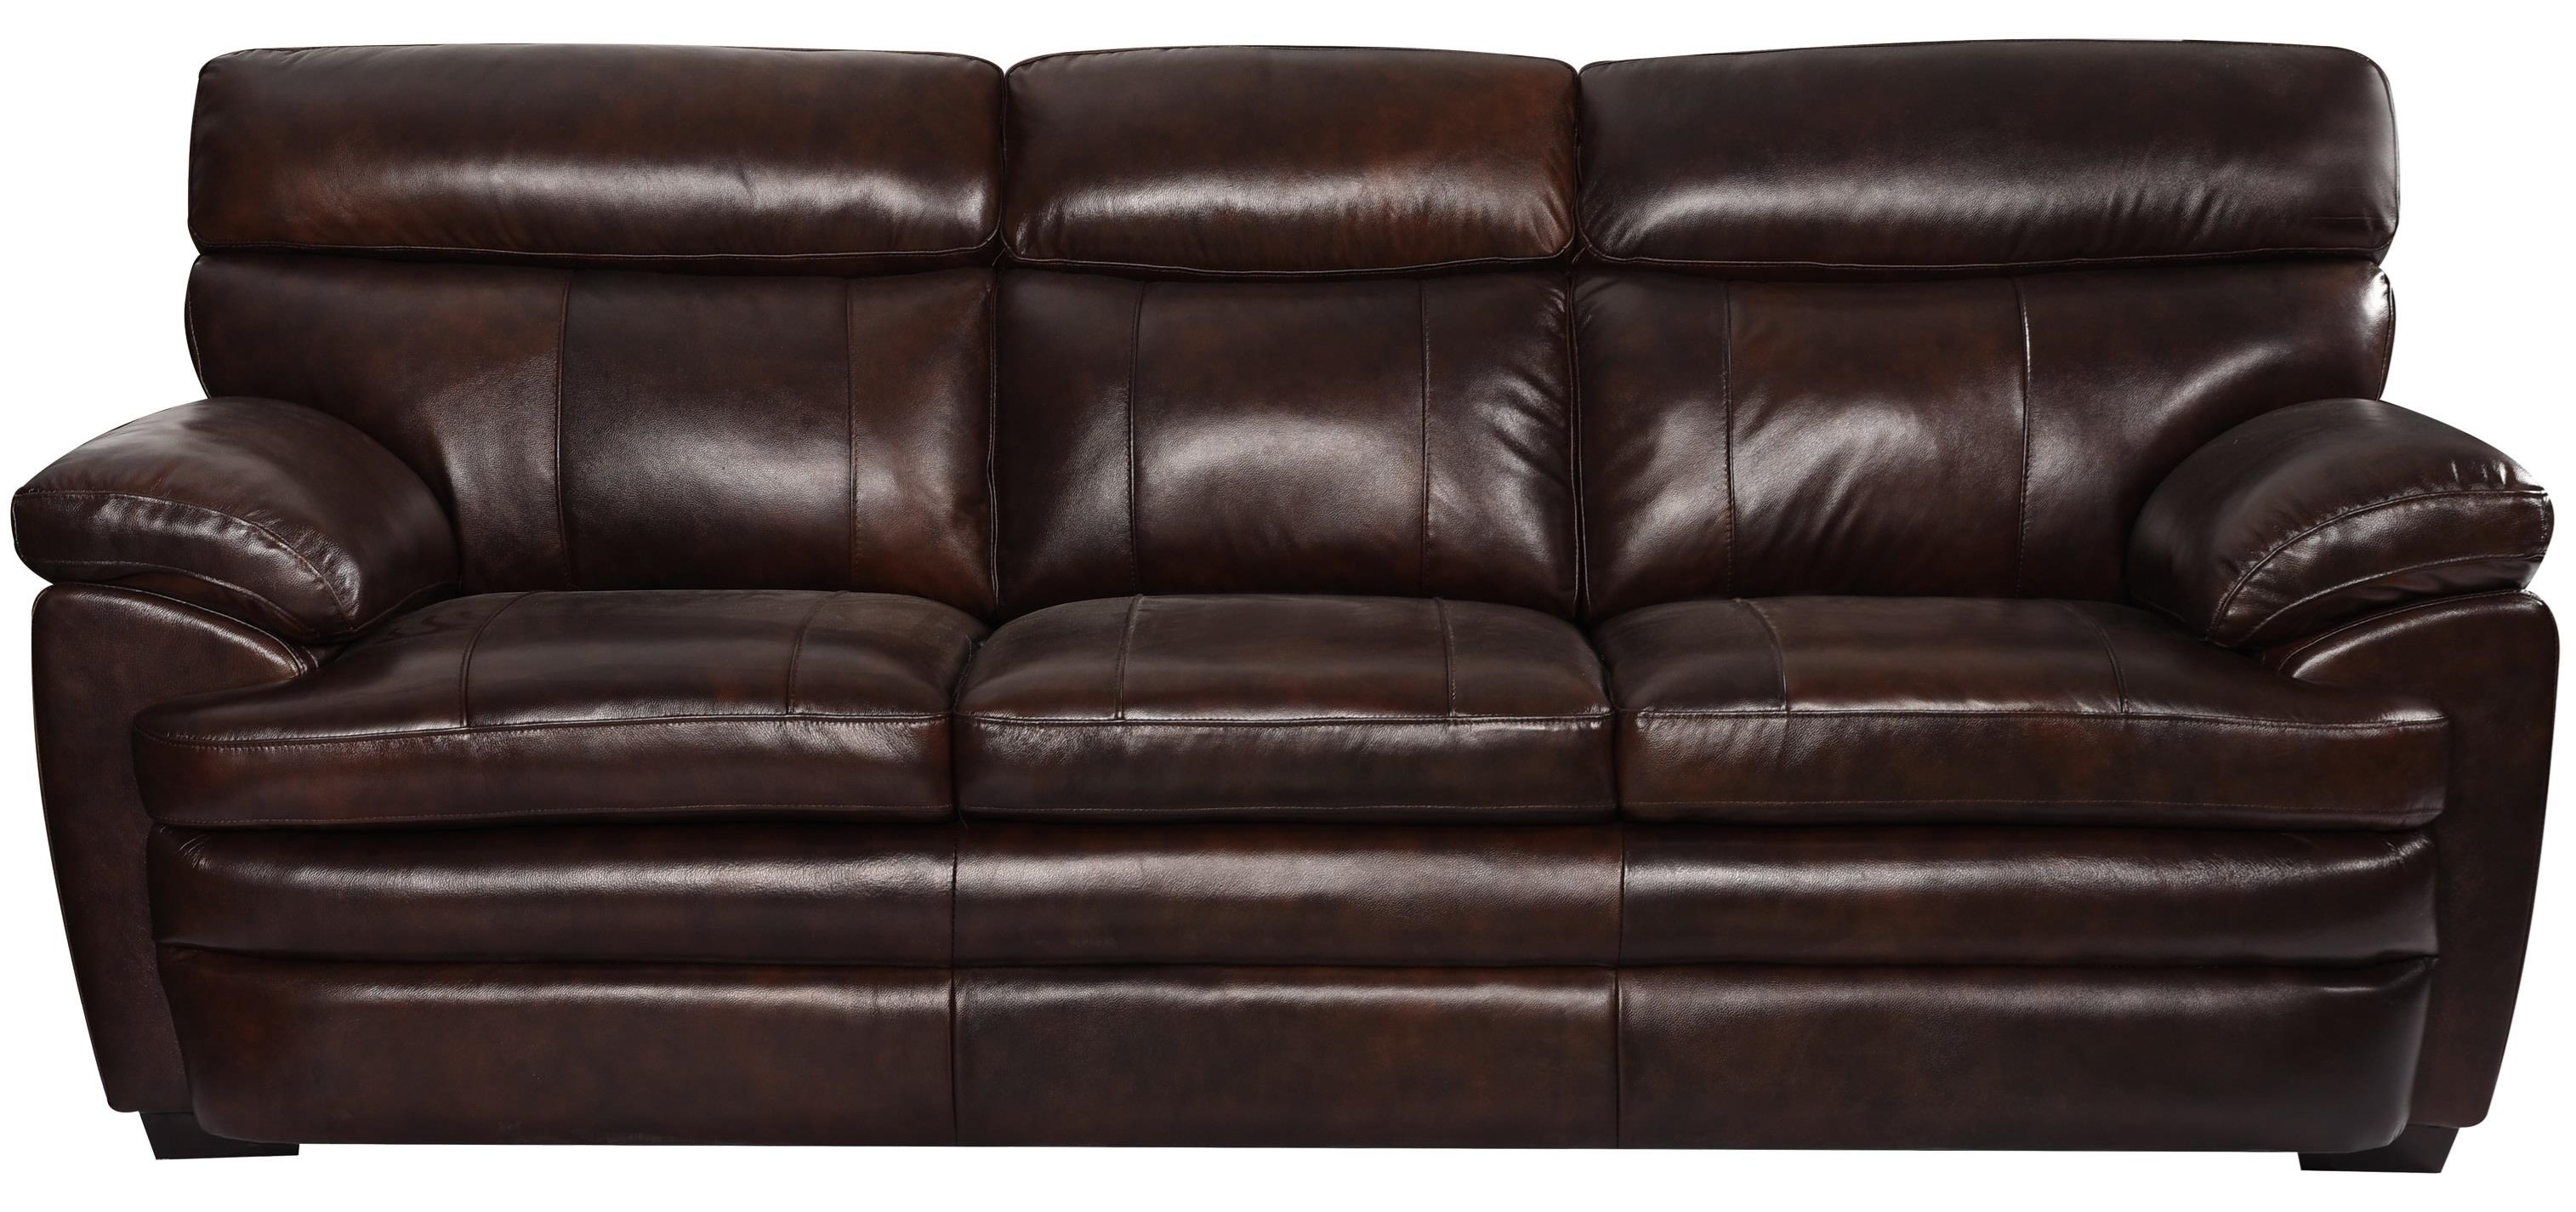 Scottsdale Leather Sofa by Benini Leather at Bennett's Furniture and Mattresses